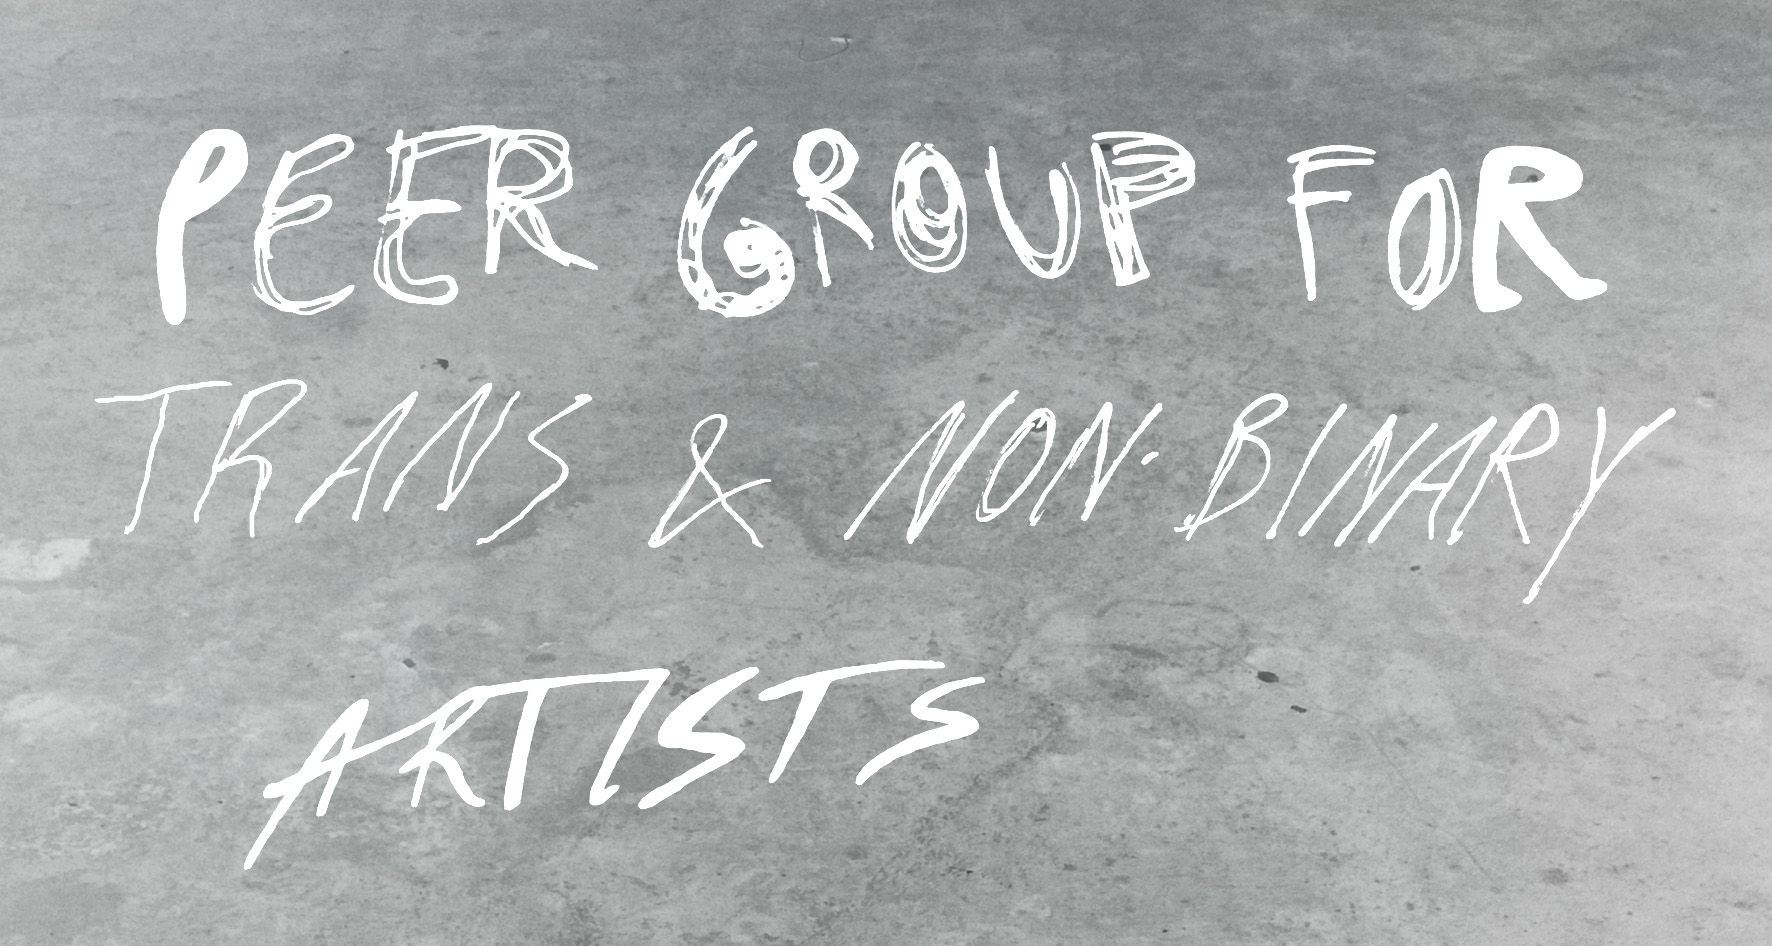 gray image, white writing: peer group for trans & non-binary artists